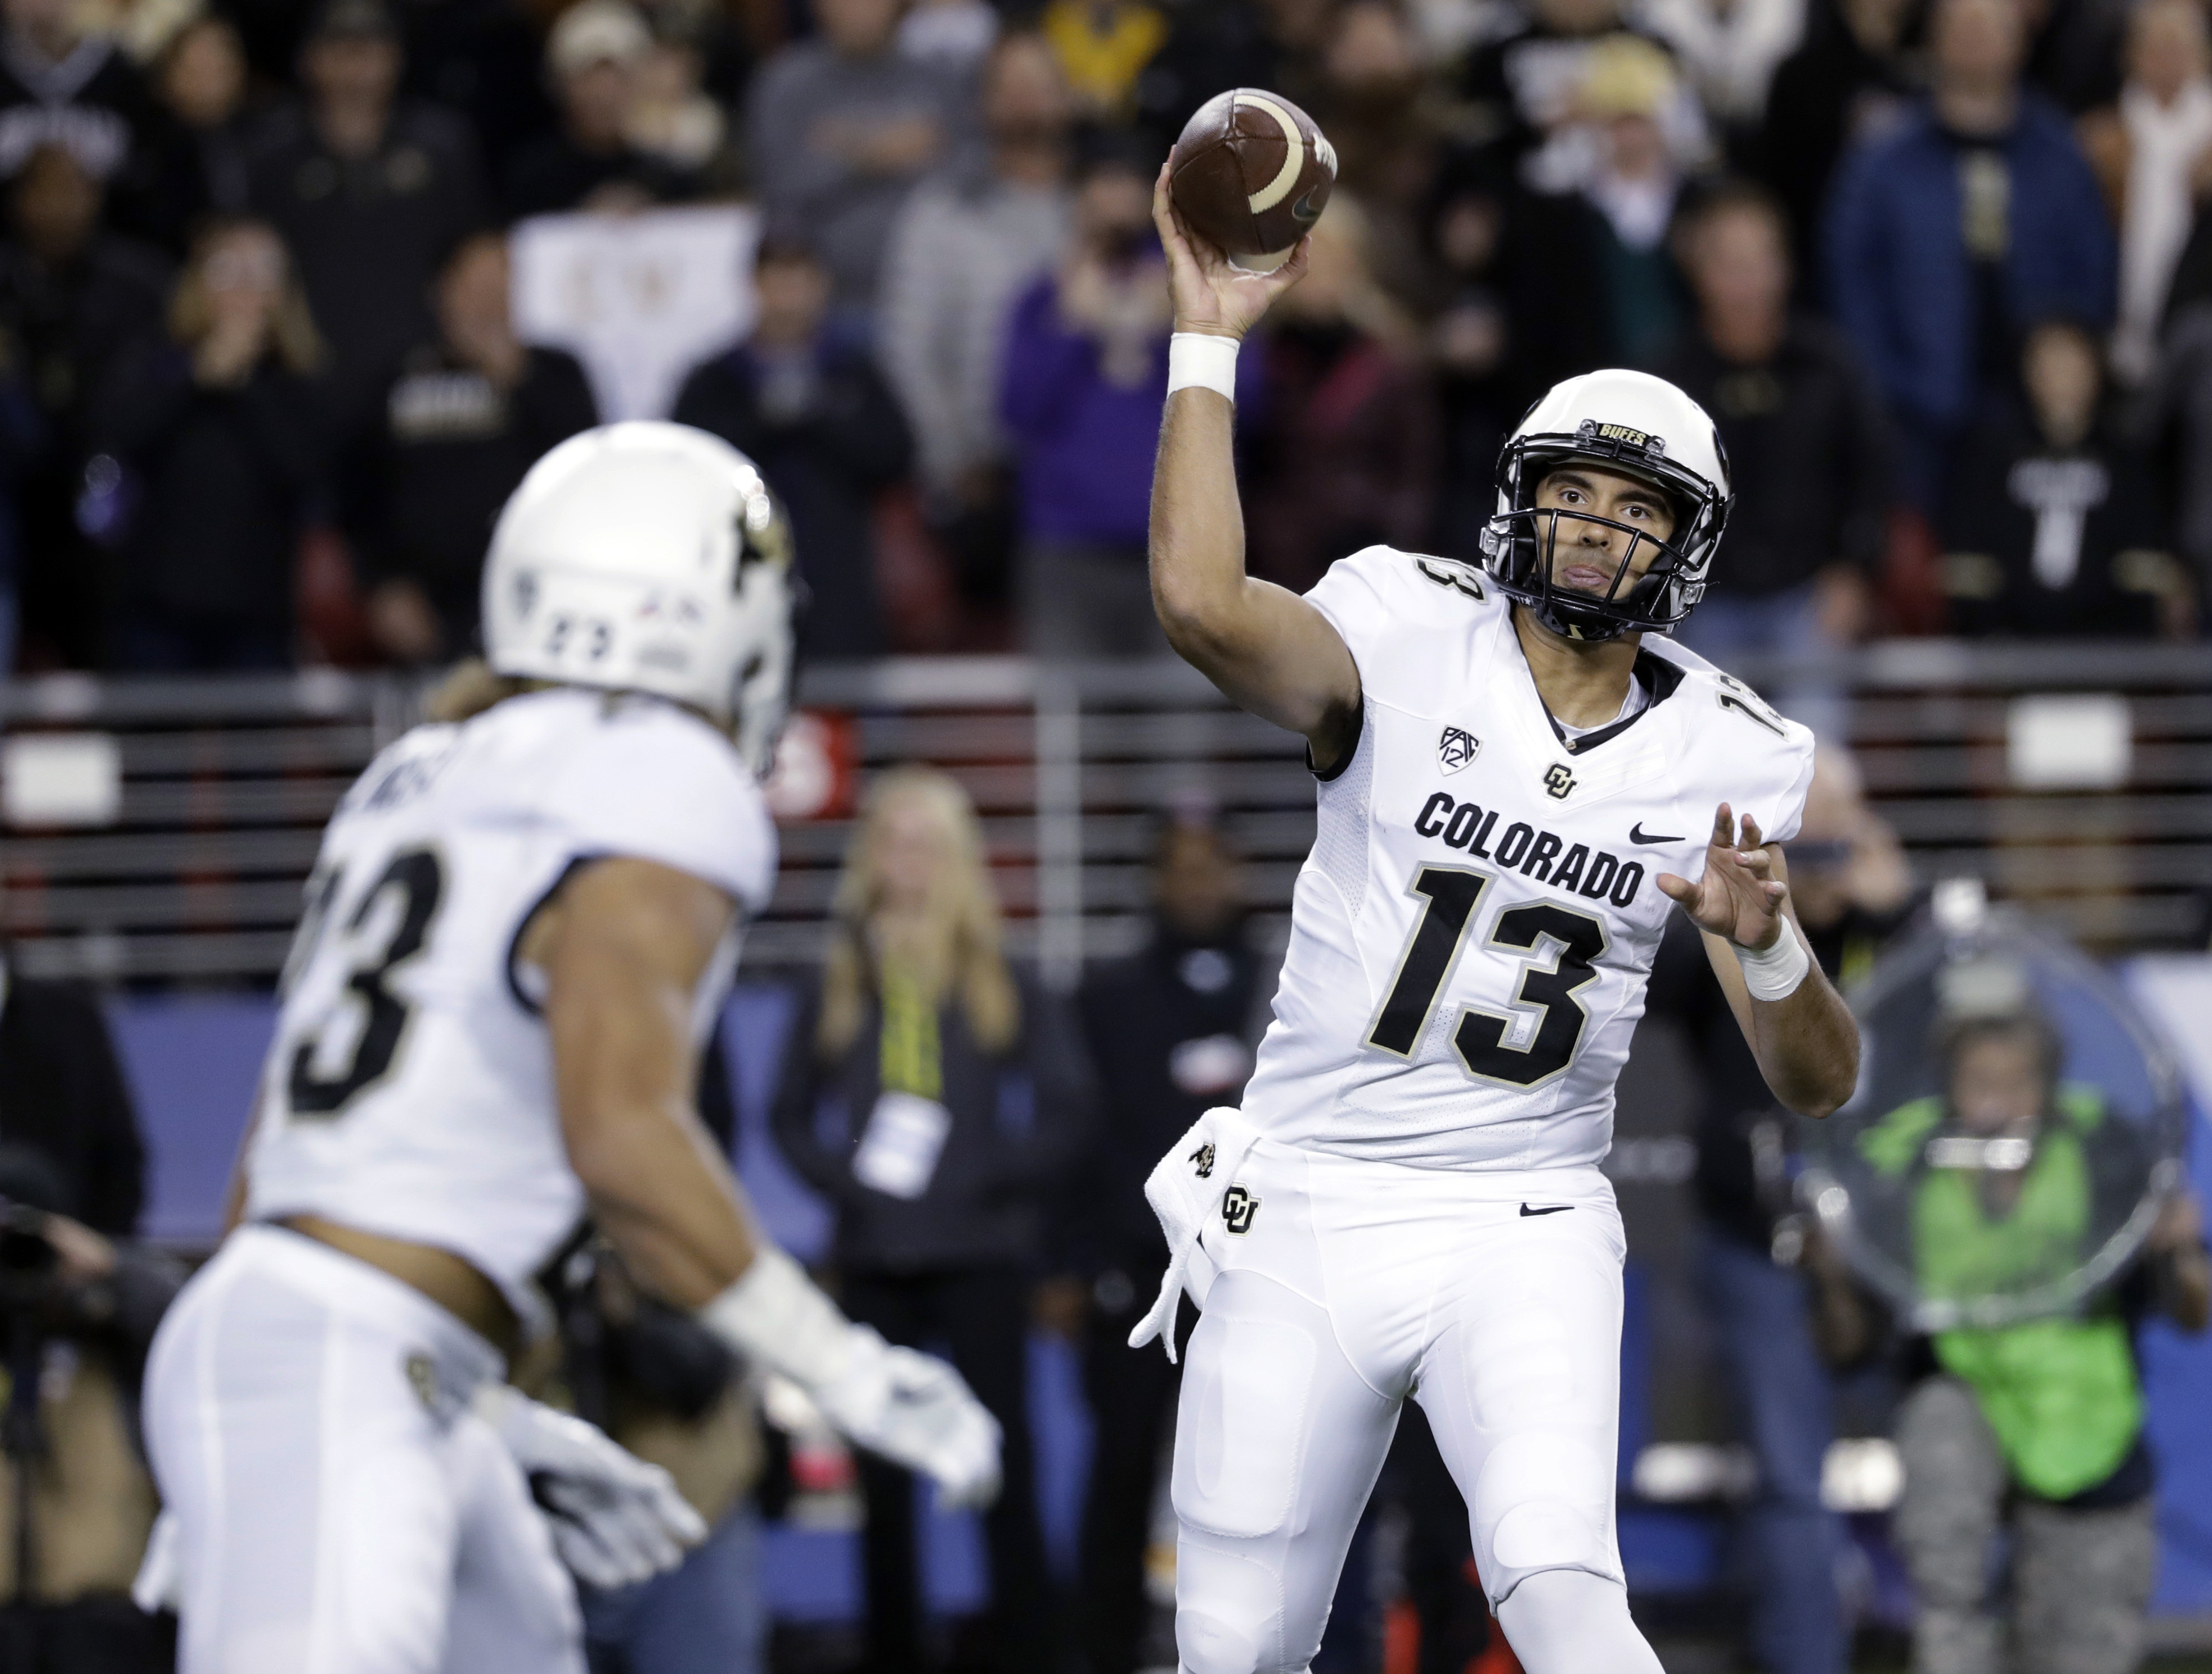 Colorado quarterback Sefo Liufau (13) throws to running back Phillip Lindsay during the first half of the Pac-12 Conference championship NCAA college football game against Colorado on Friday, Dec. 2, 2016, in Santa Clara, Calif. (AP Photo/Marcio Jose Sanc